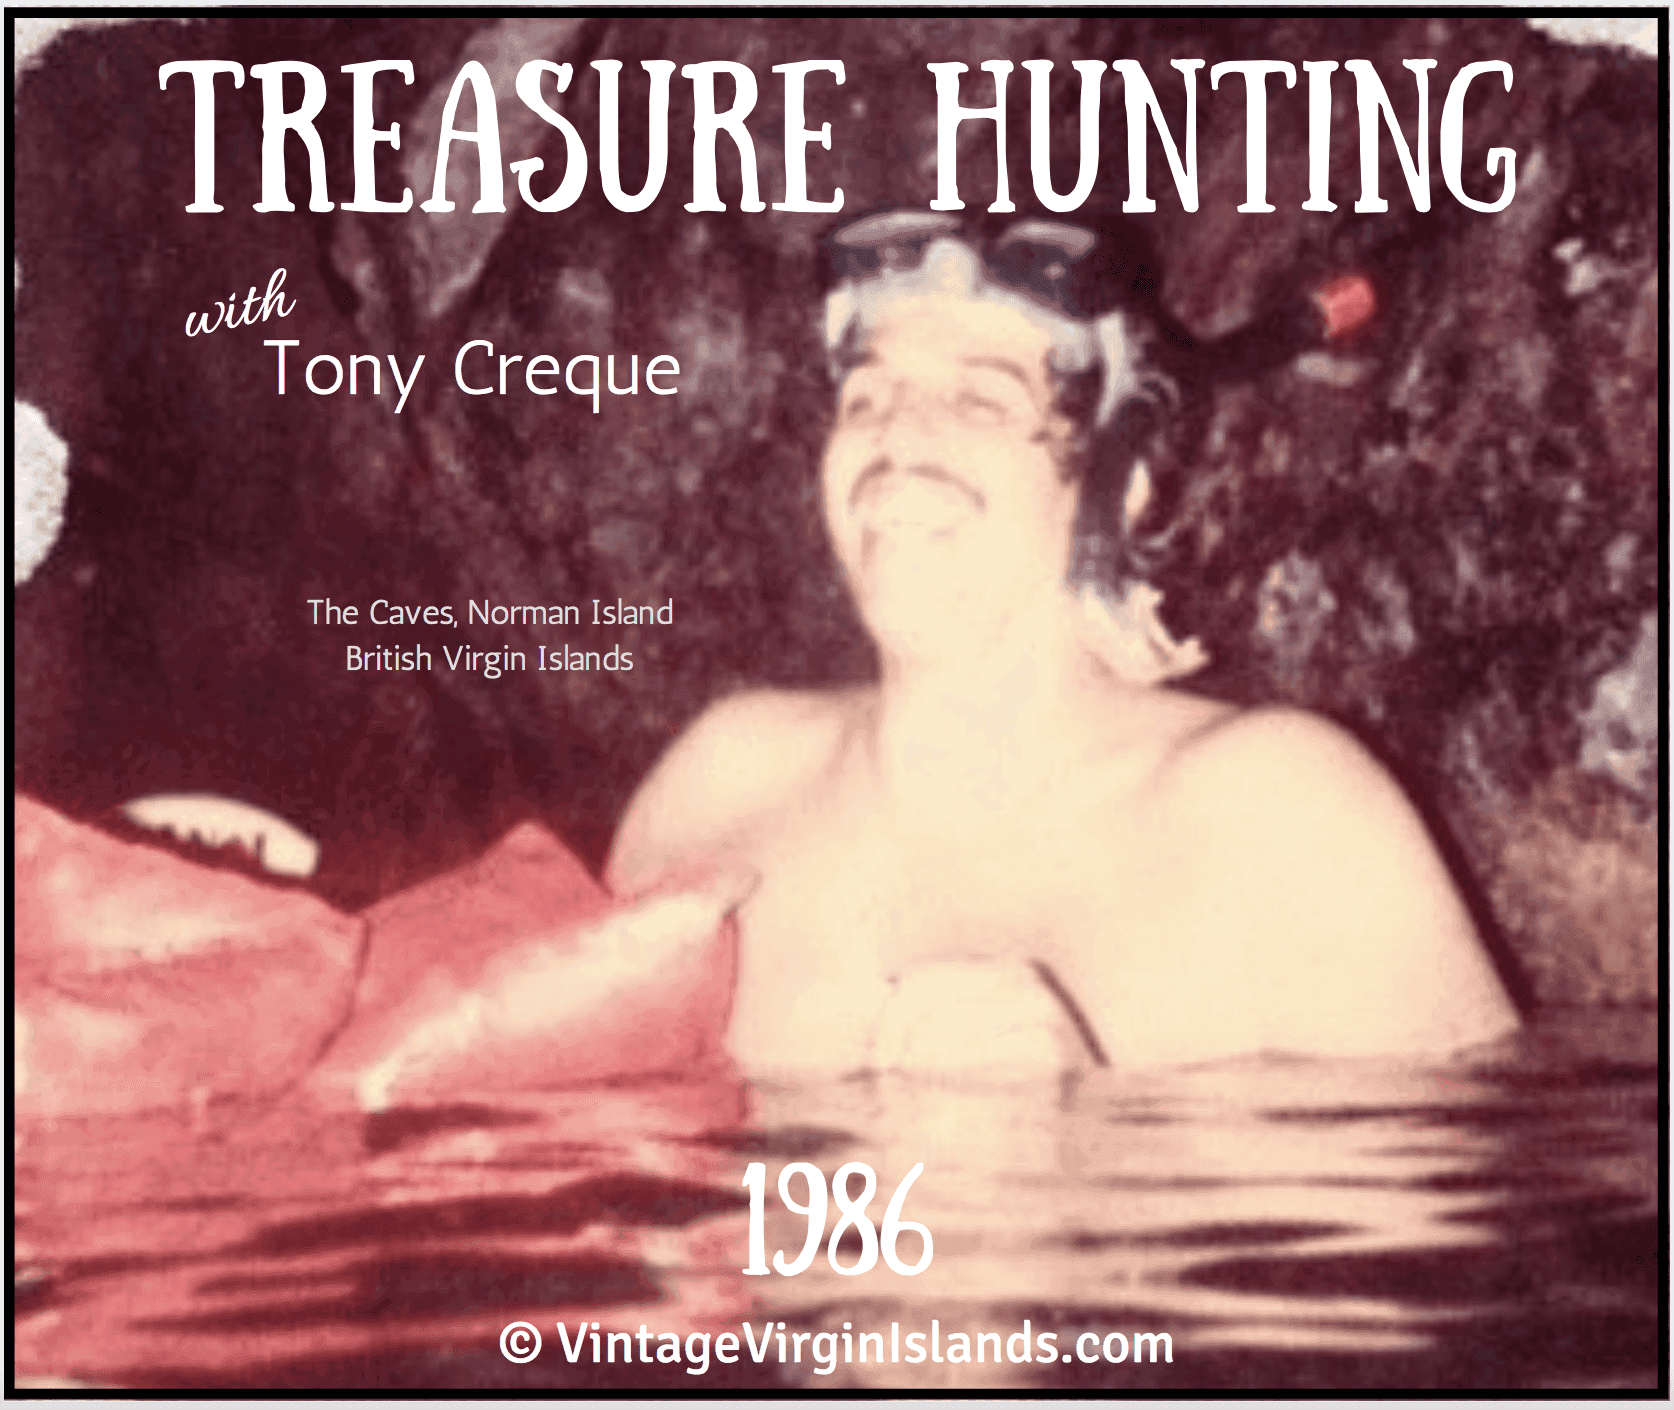 Treasure Hunting with Tony Creque at the Caves, Norman Island, British Virgin Islands ~ 1986